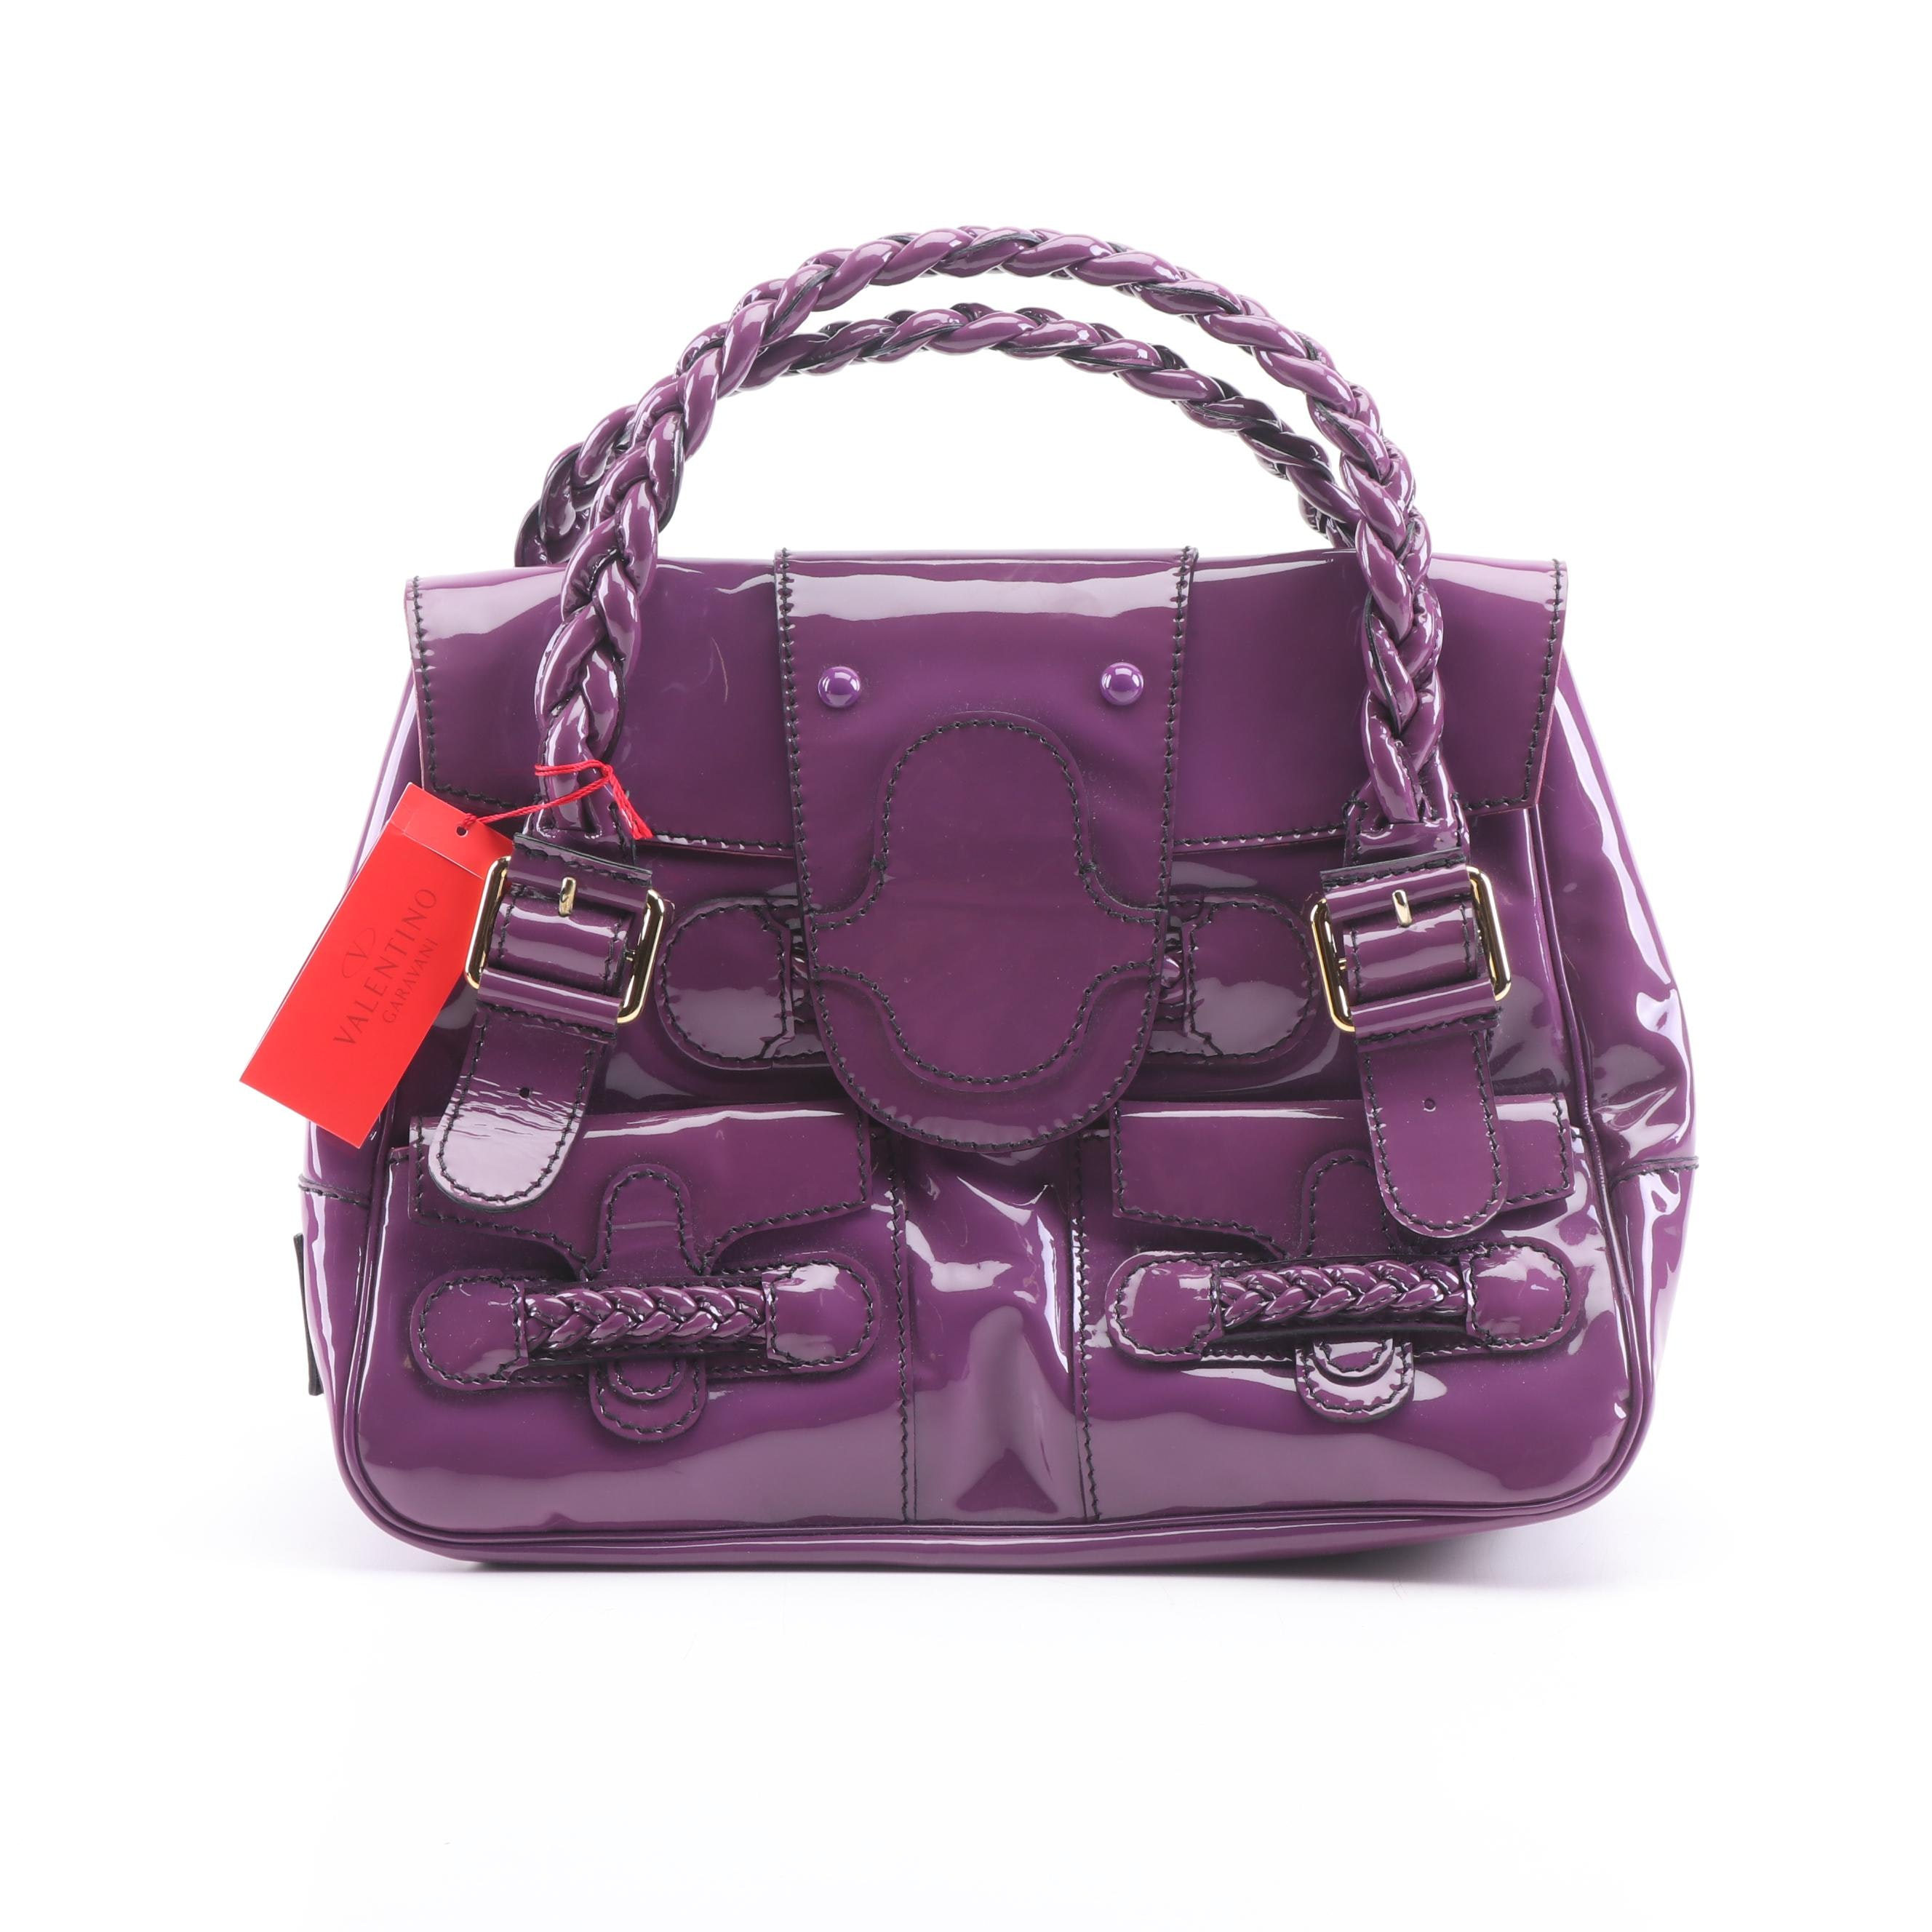 Valentino Garavani Eggplant Patent Leather Shoulder Bag